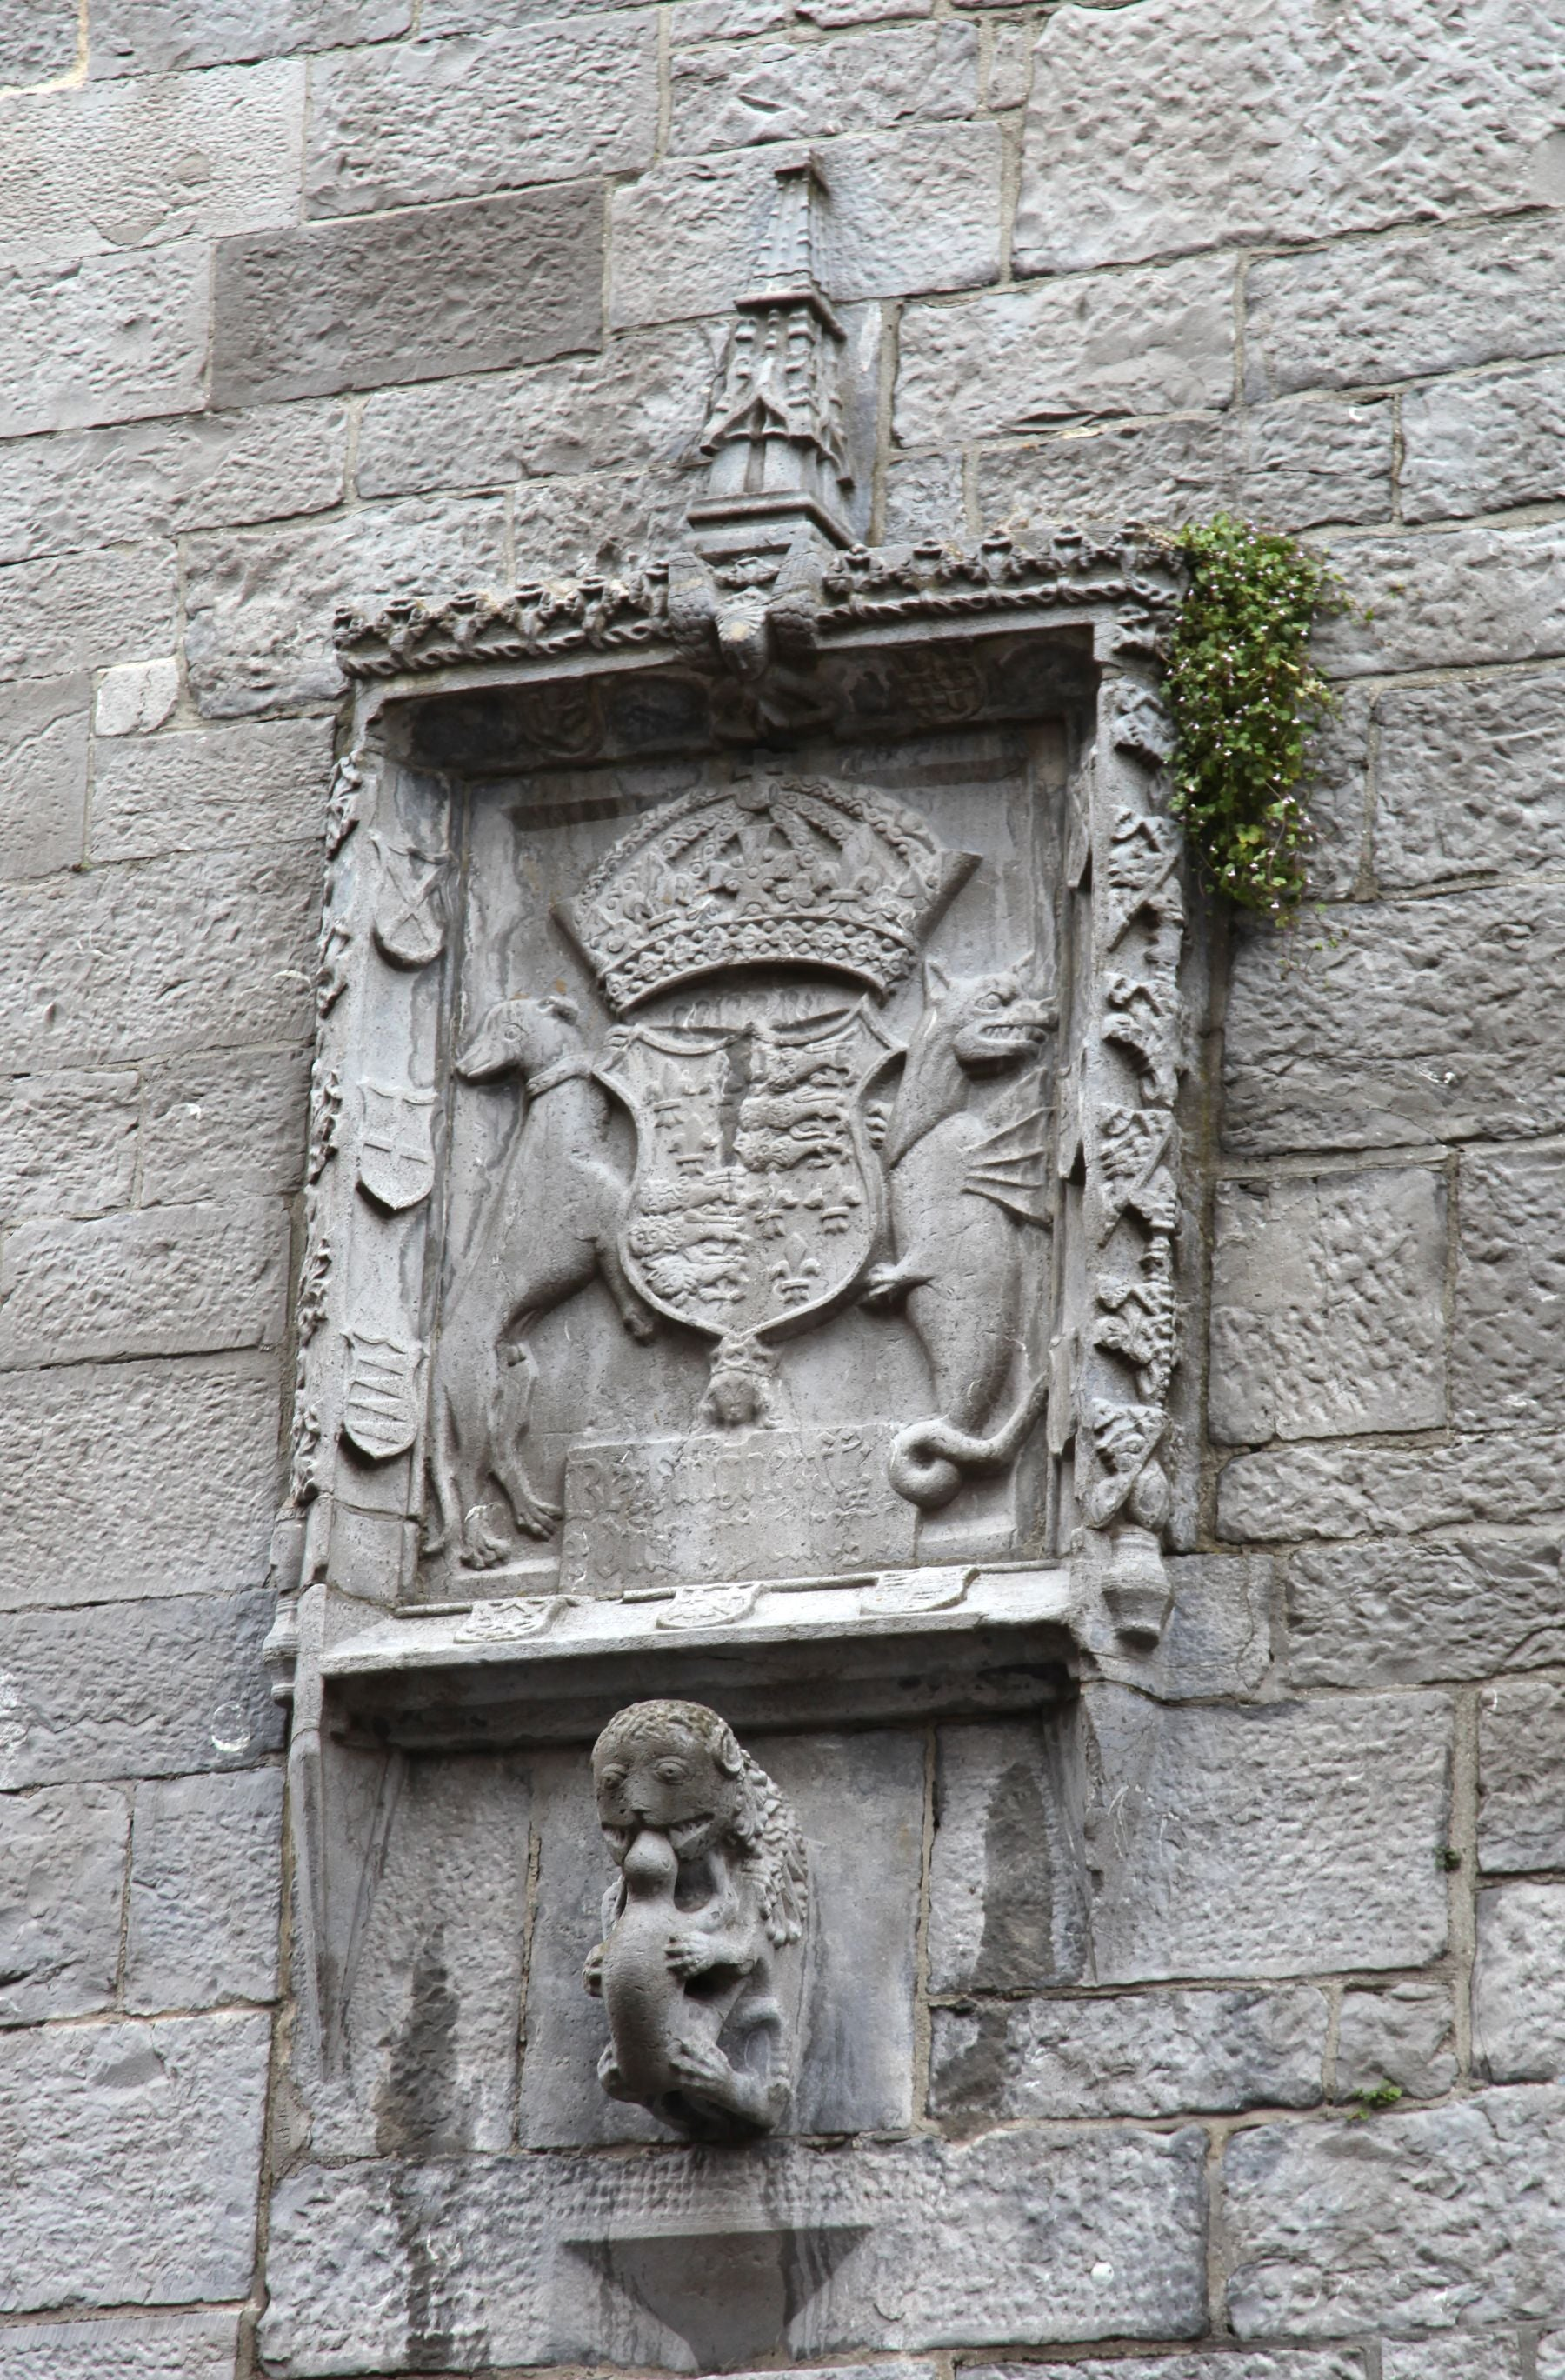 Carving in Lynch's Castle